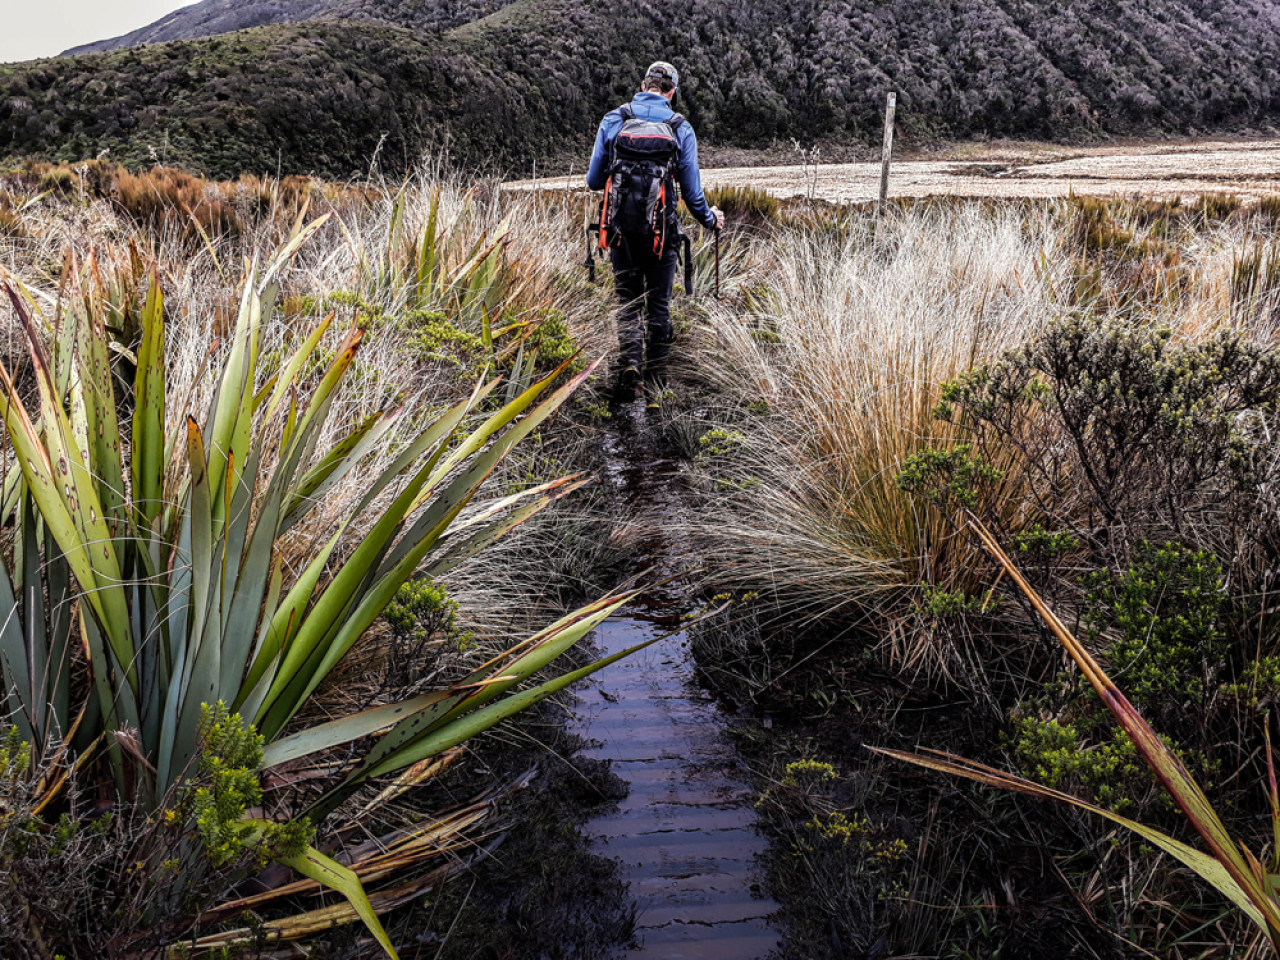 Here JJ traverses the extensive Ahukawakawa wetland.